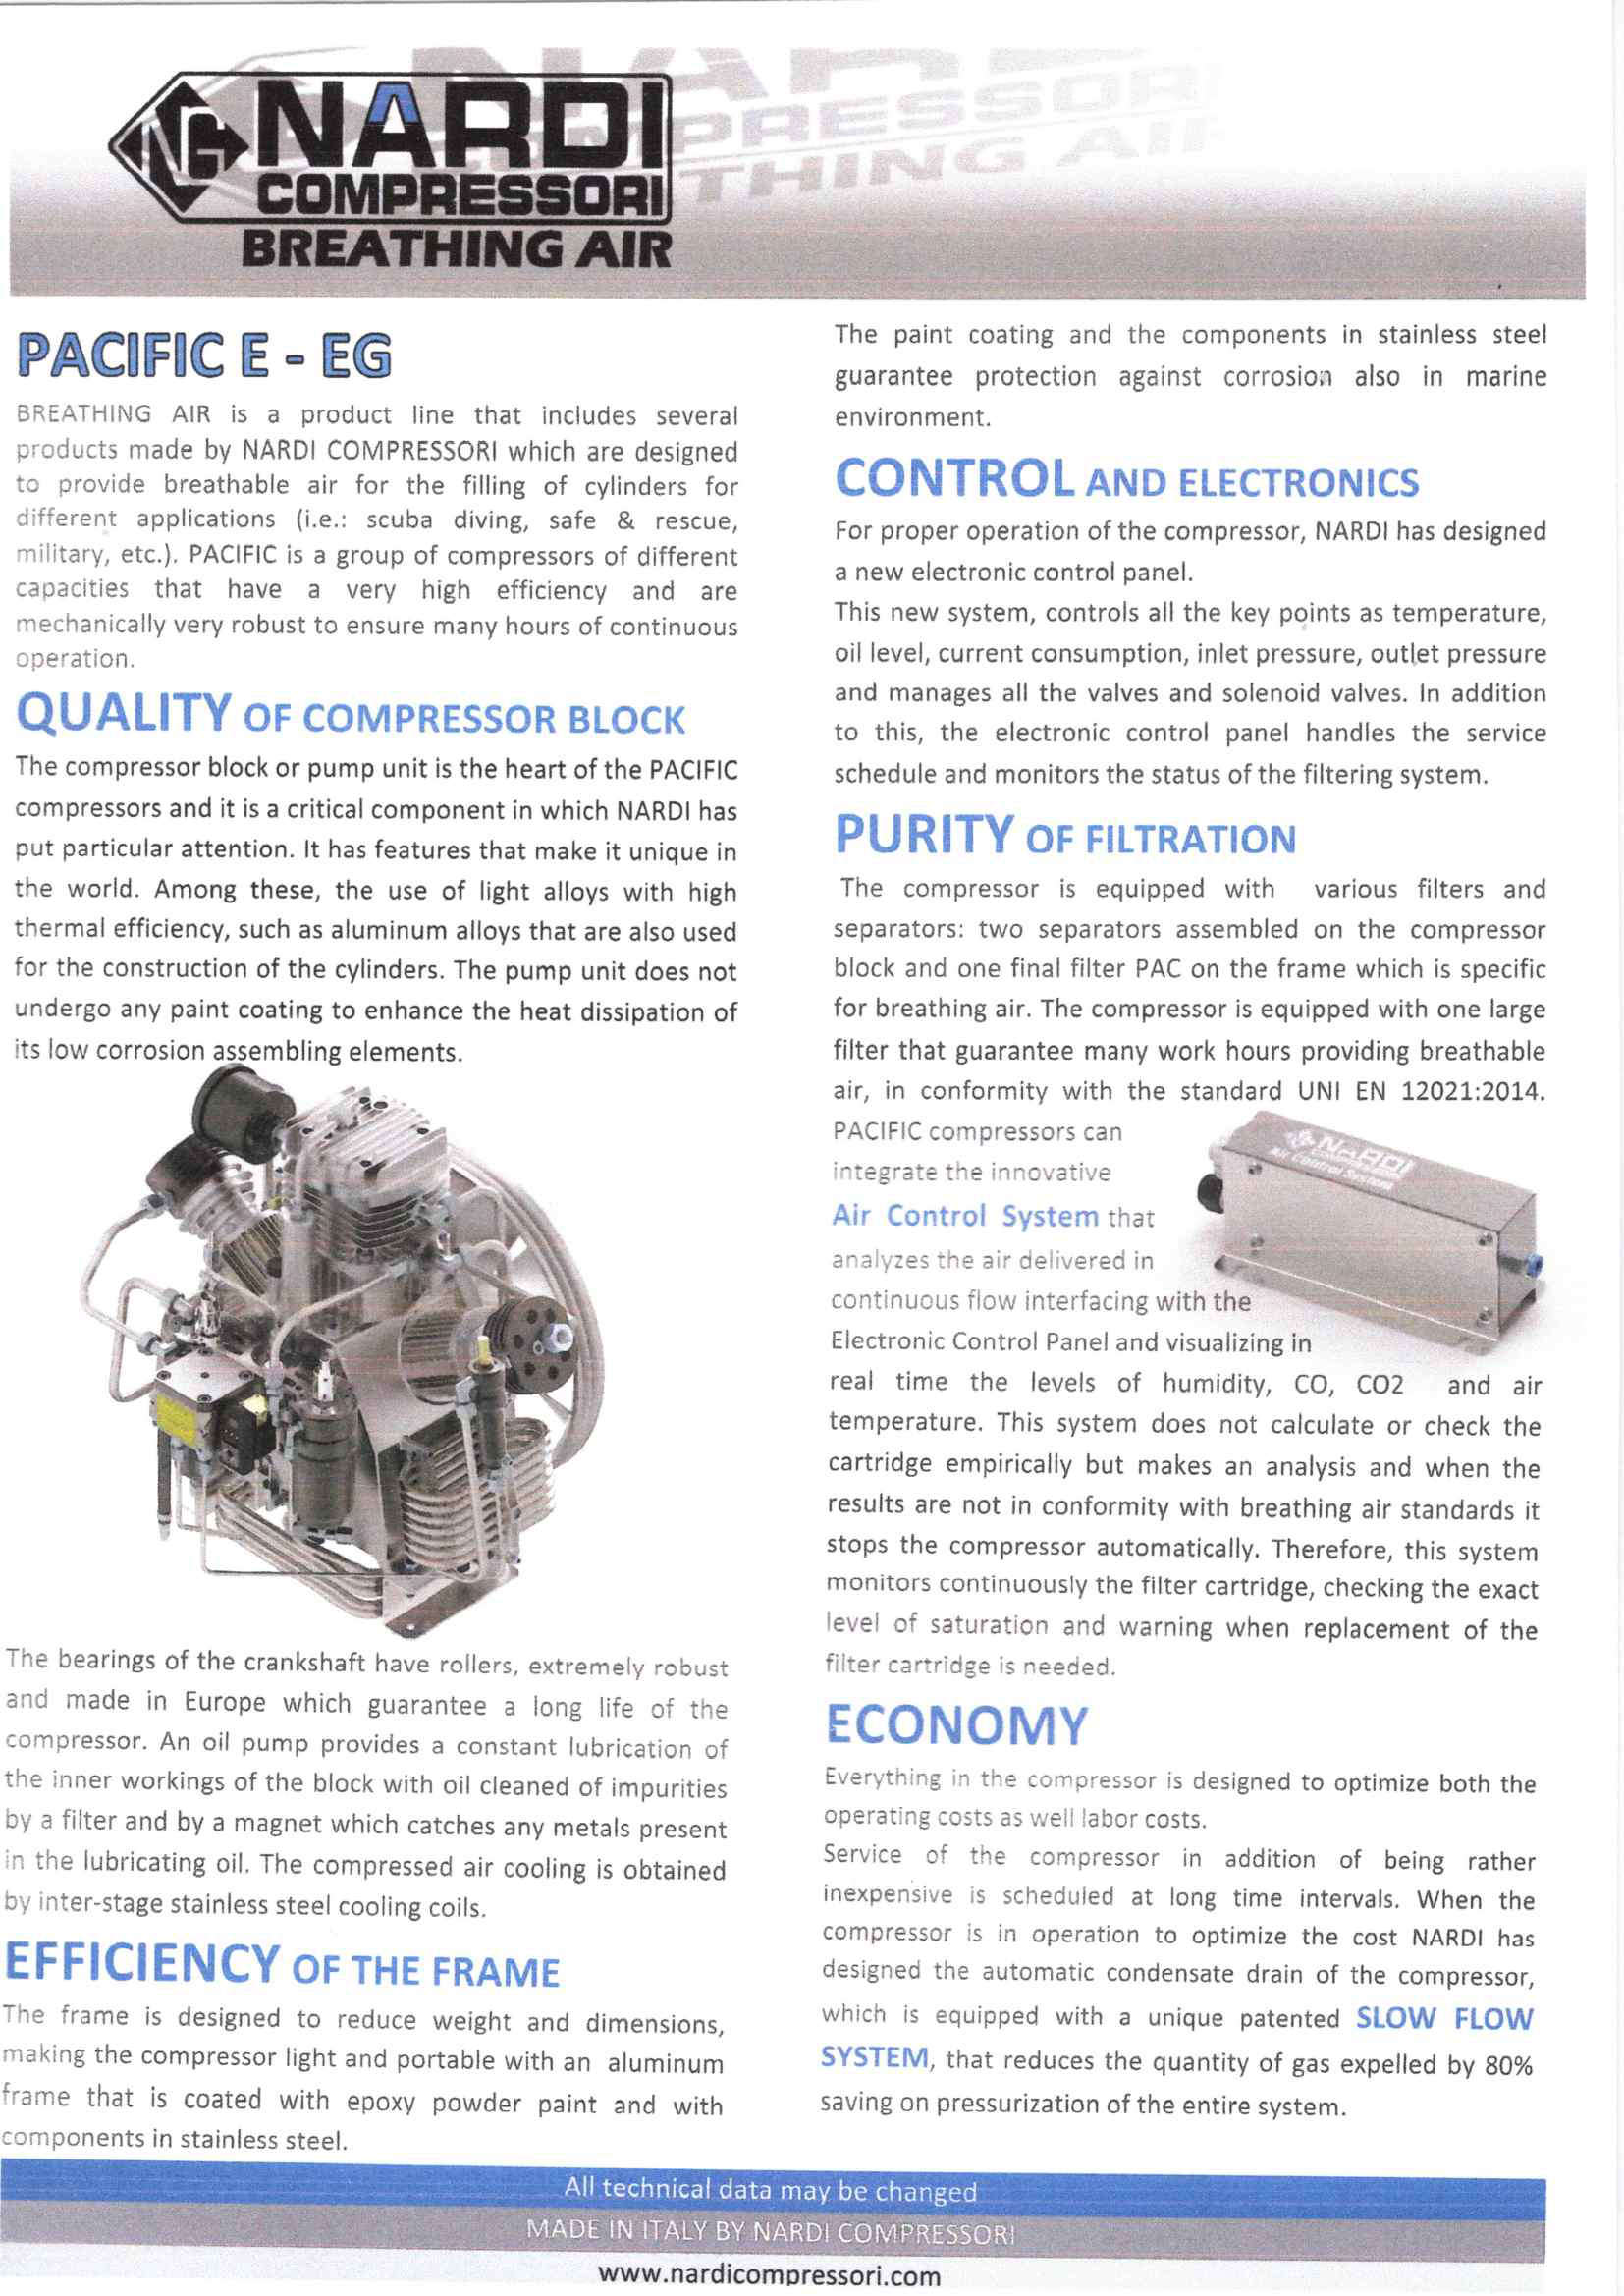 Quality, Control & Filtration Purity - Pacific E-EG Nardi Breathing Air Compressors